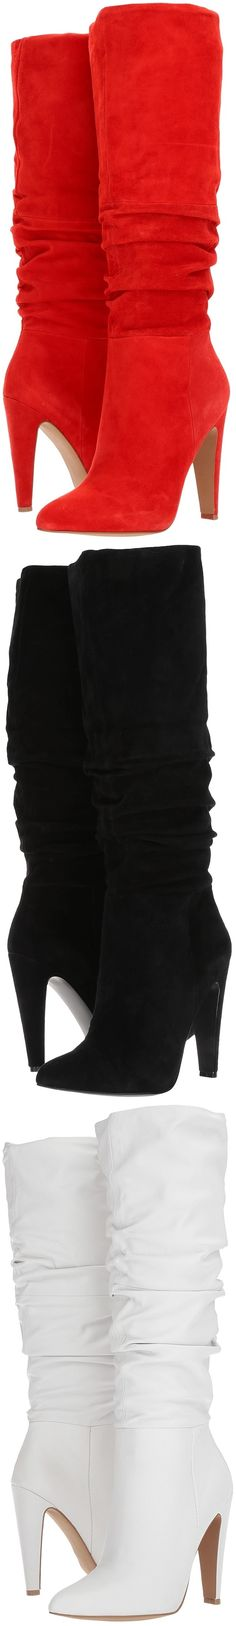 Red, Black, or White? Put your sharpest fashion foot forward this fall in the Steve Madden's Carrie knee boots